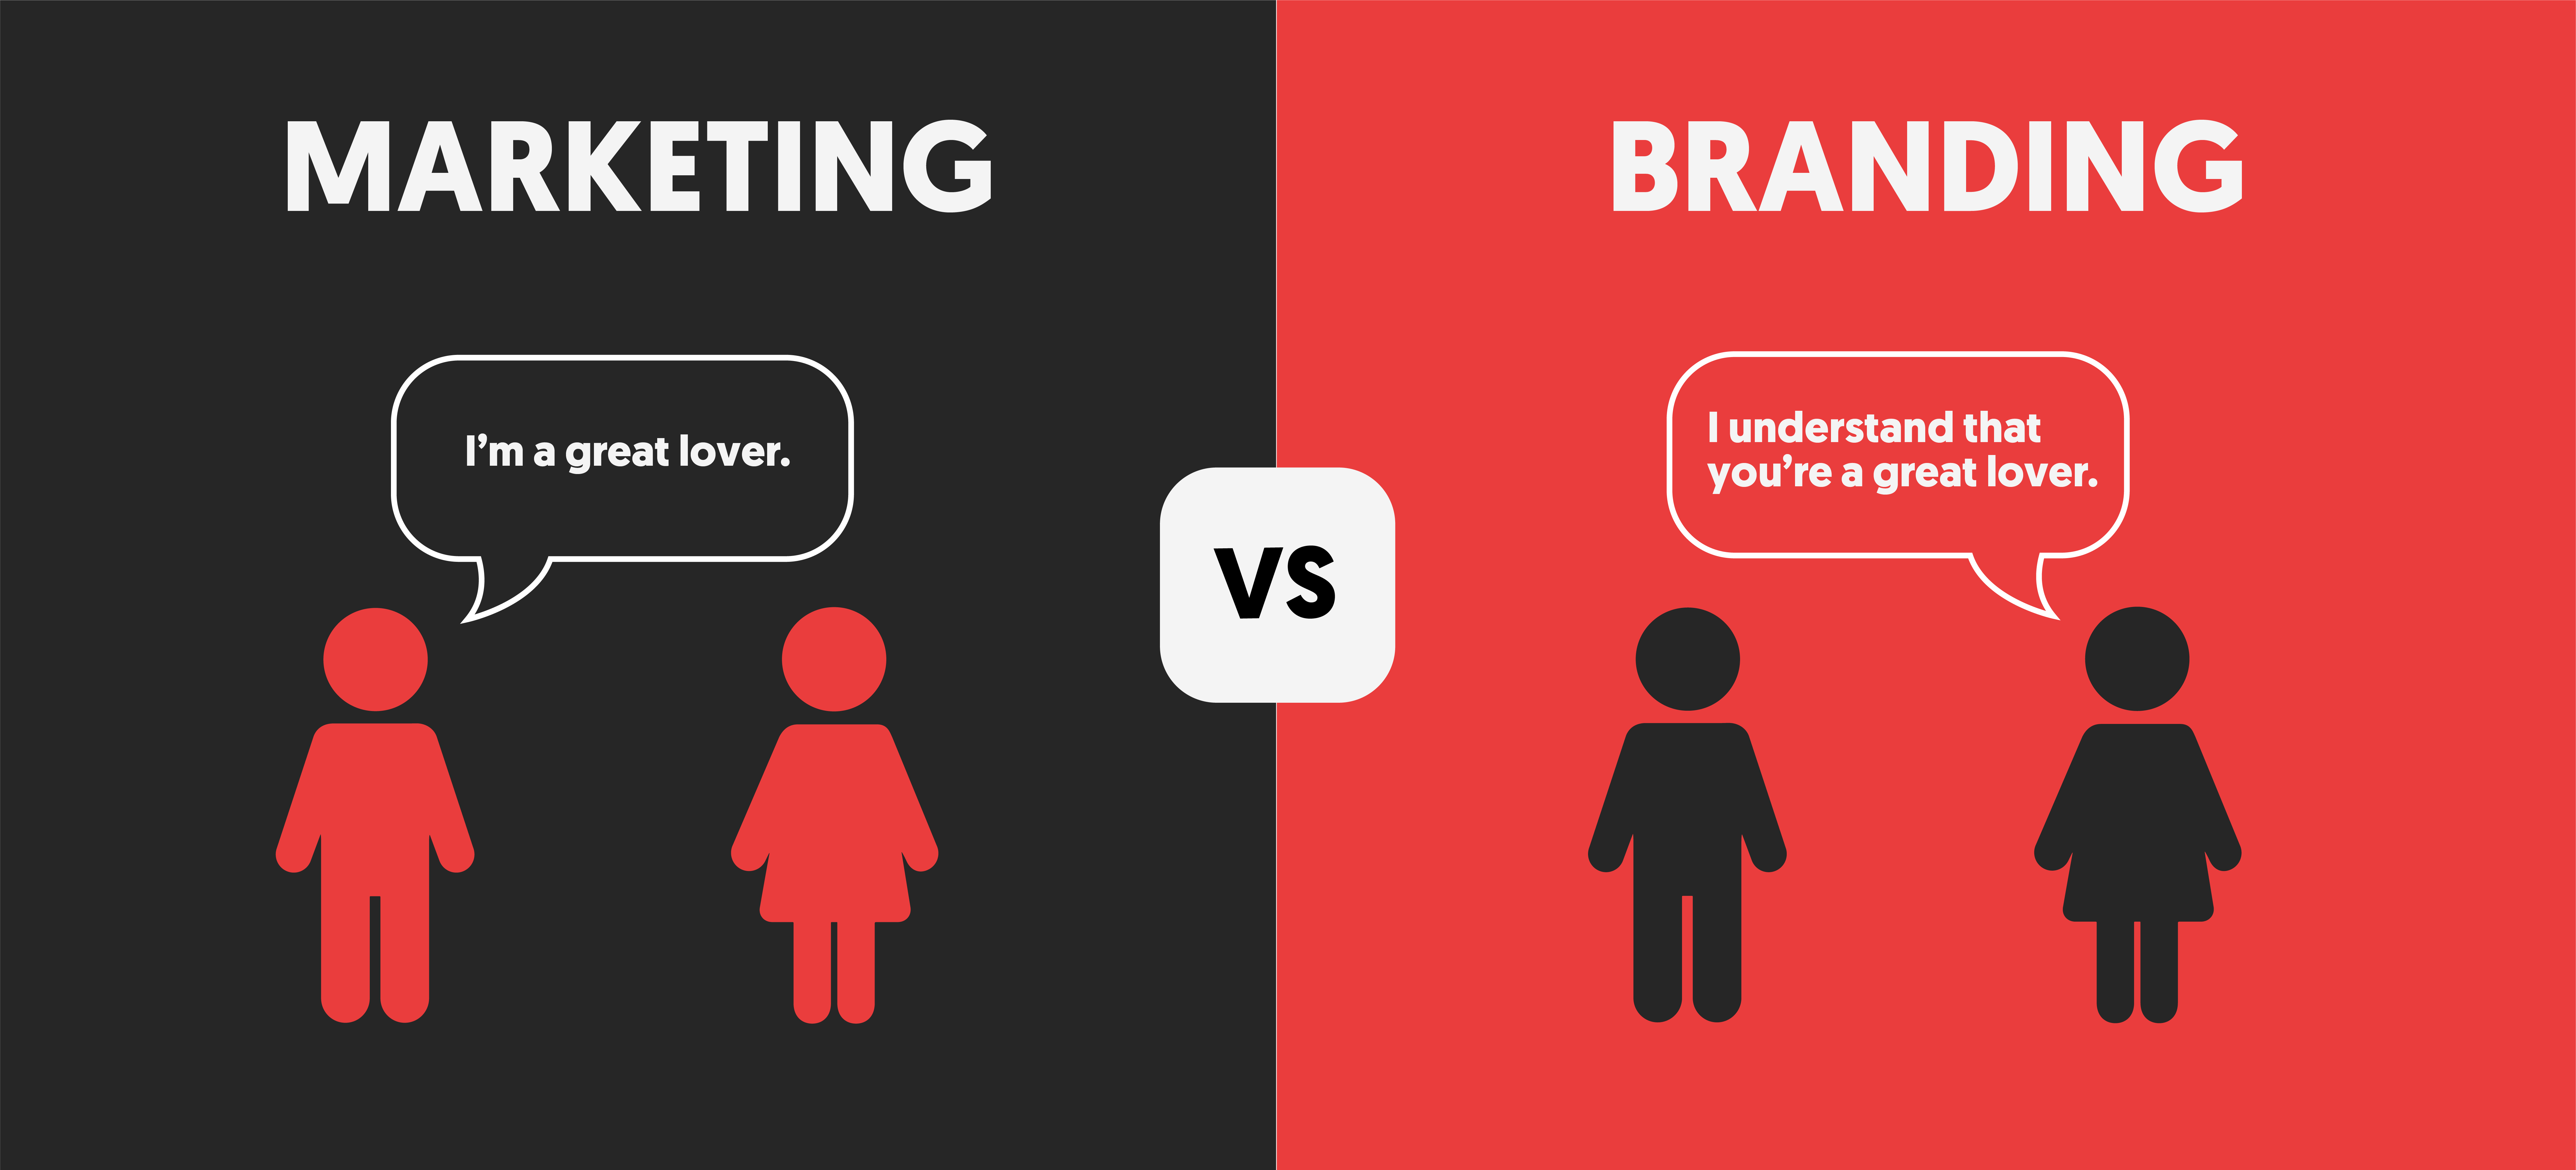 Marketing vs Branding. I'm a great lover vs I understand you're a great lover. From Marty Neumeier's book, Zag.